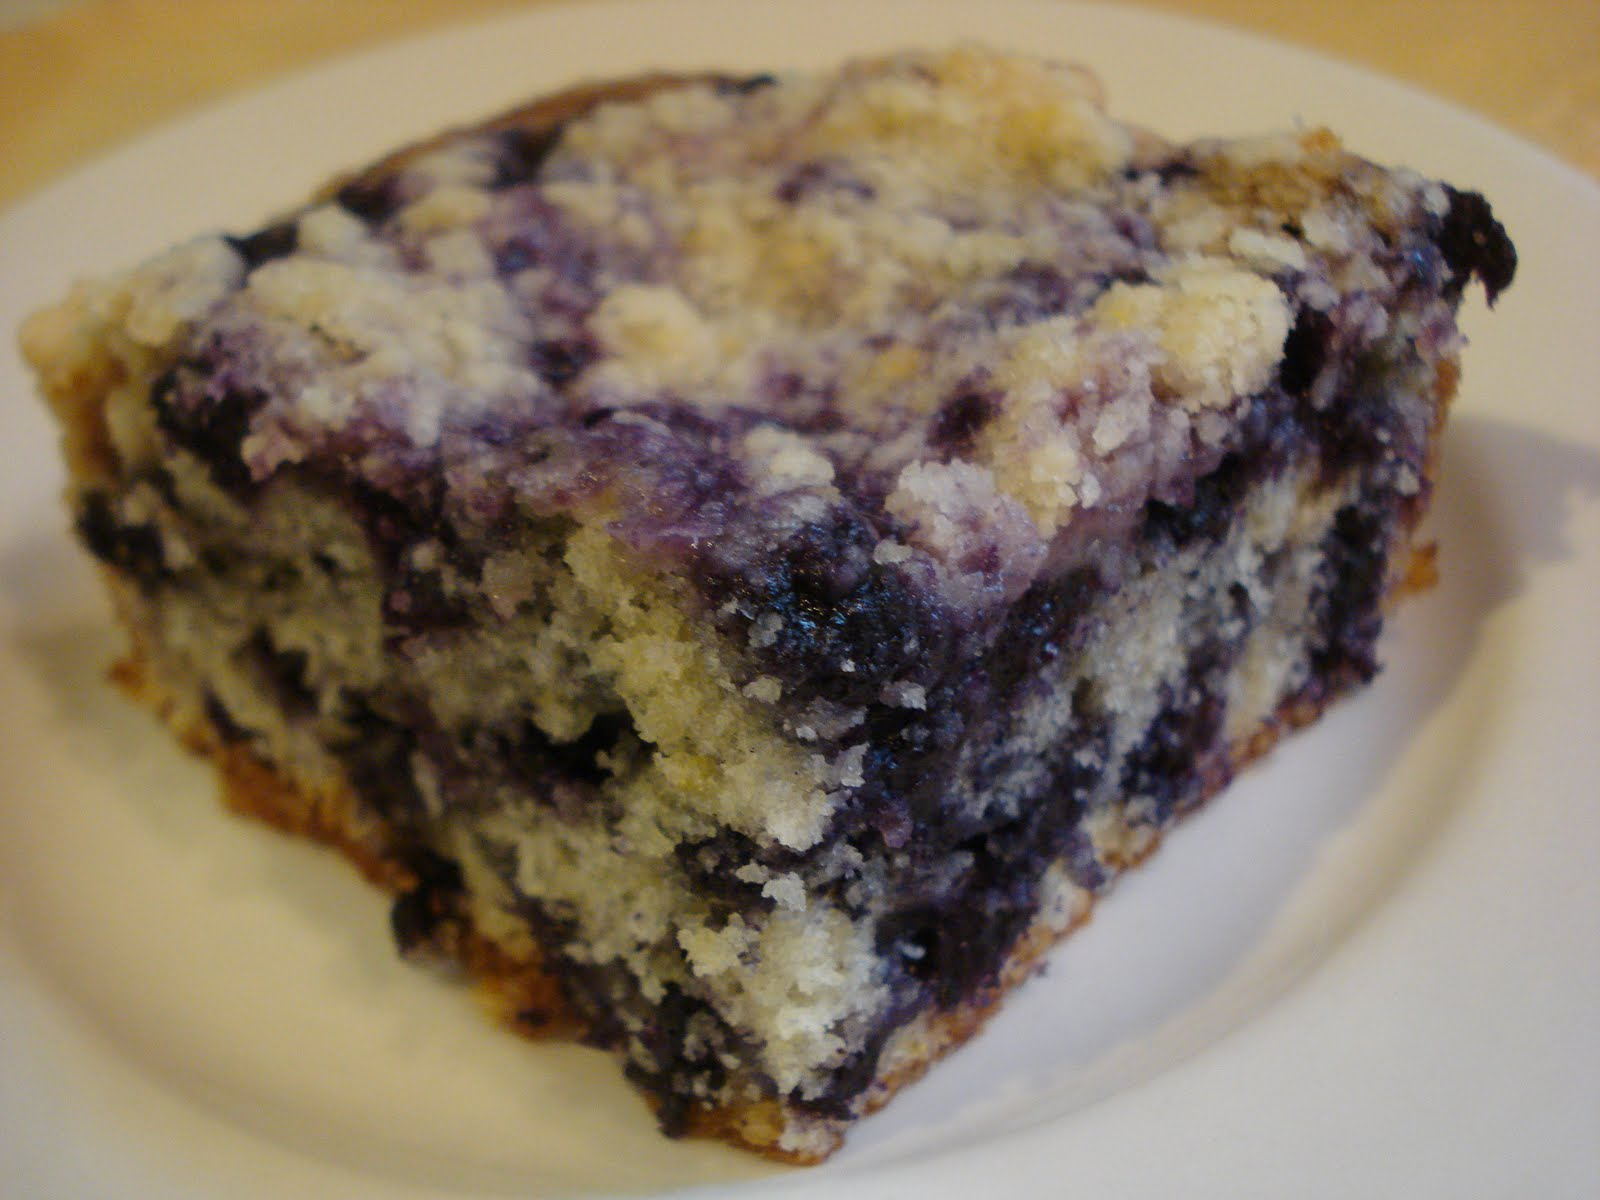 ... Lemon Blueberry Buckle is every bit as delicious as that Blueberry